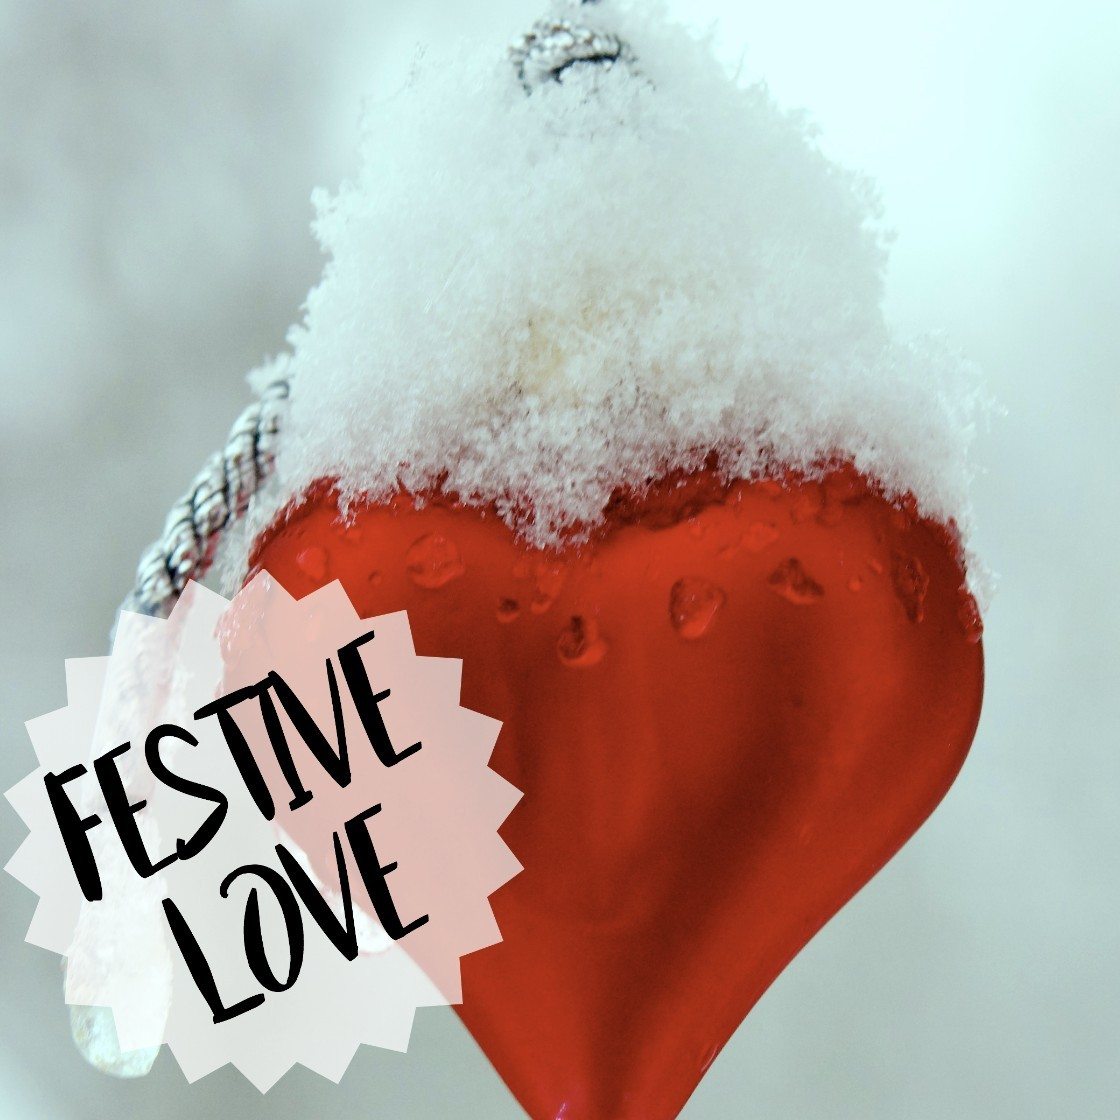 Festive Love, Festive, Love, BlogMas, Christmas, Blog Post, Heart, Snow, Flickr, Loneliness, Lonely, Festive Season, Share the Love, Blog A Book Etc, Fay